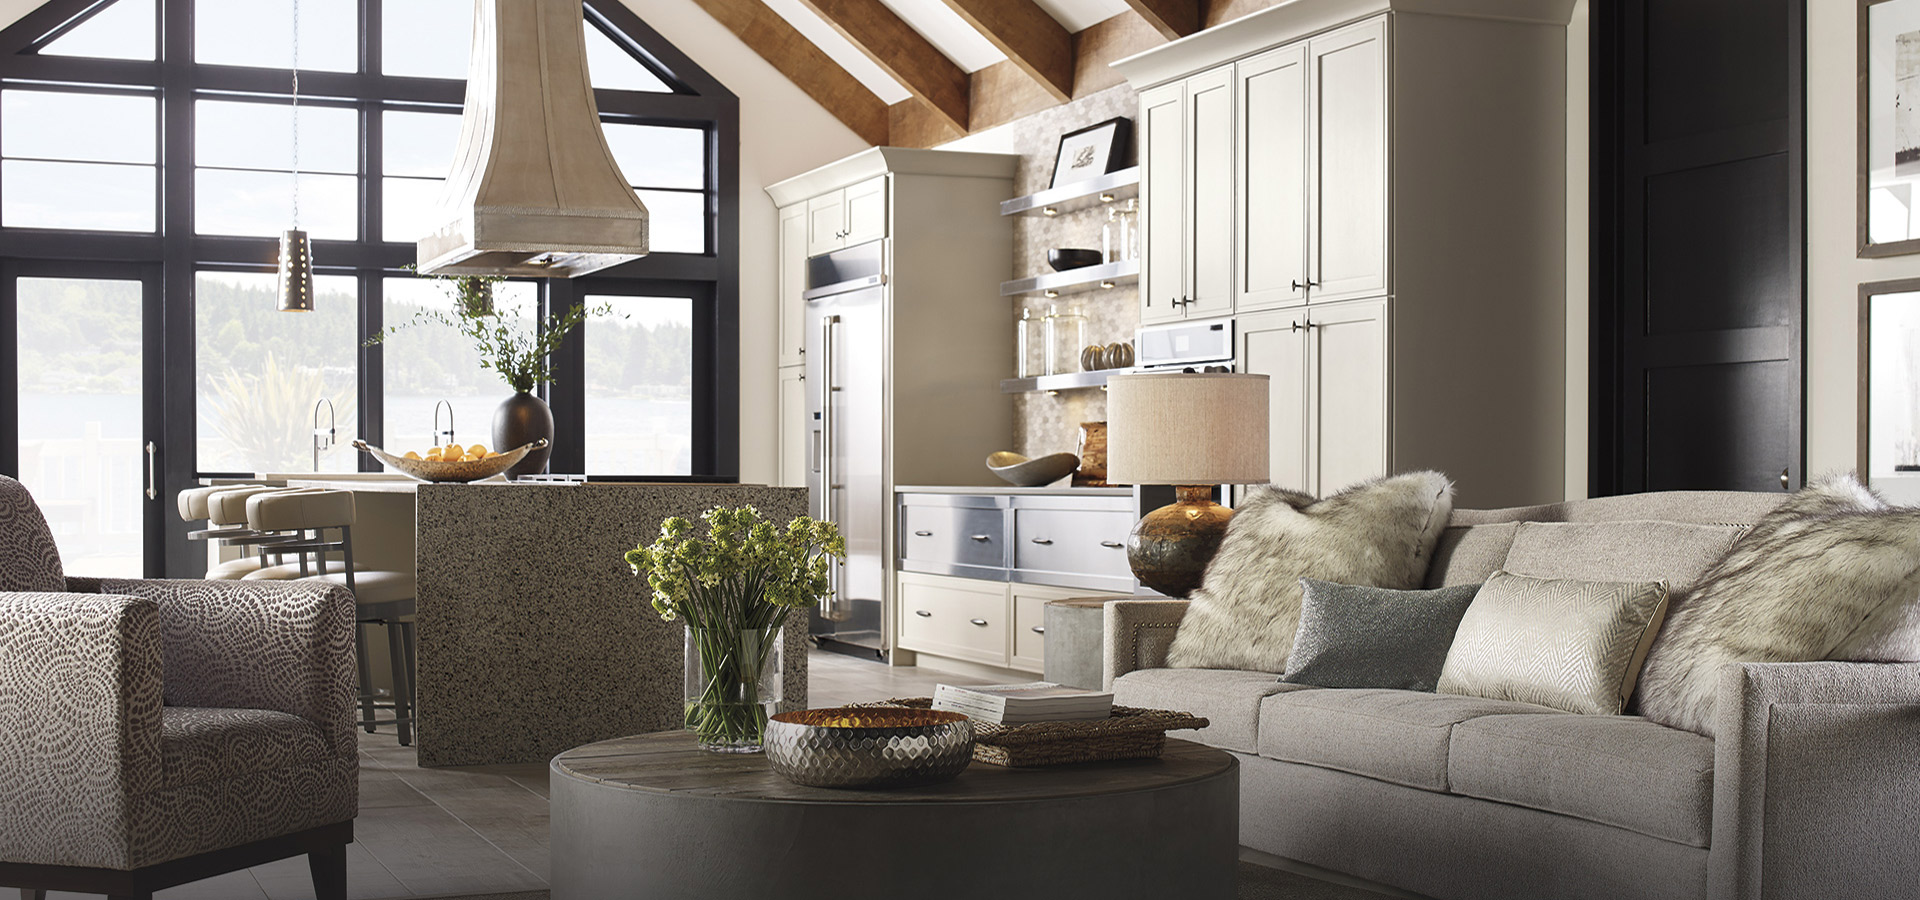 Leto and Tarin gray kitchen cabinets in Meteor Gray finish